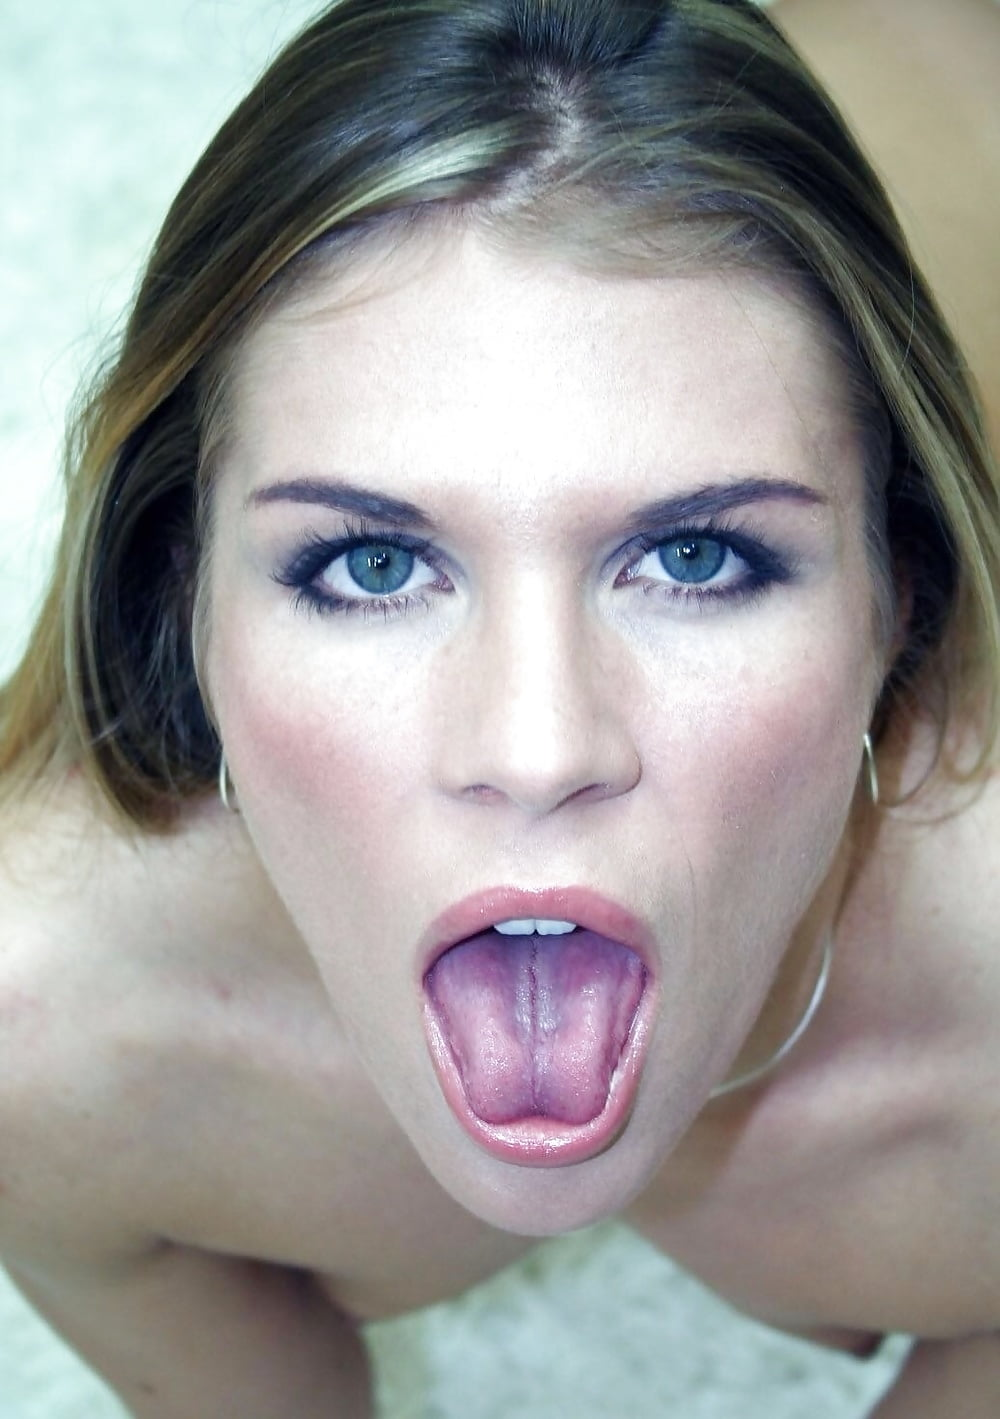 Hot babes naked in the mouth — pic 5